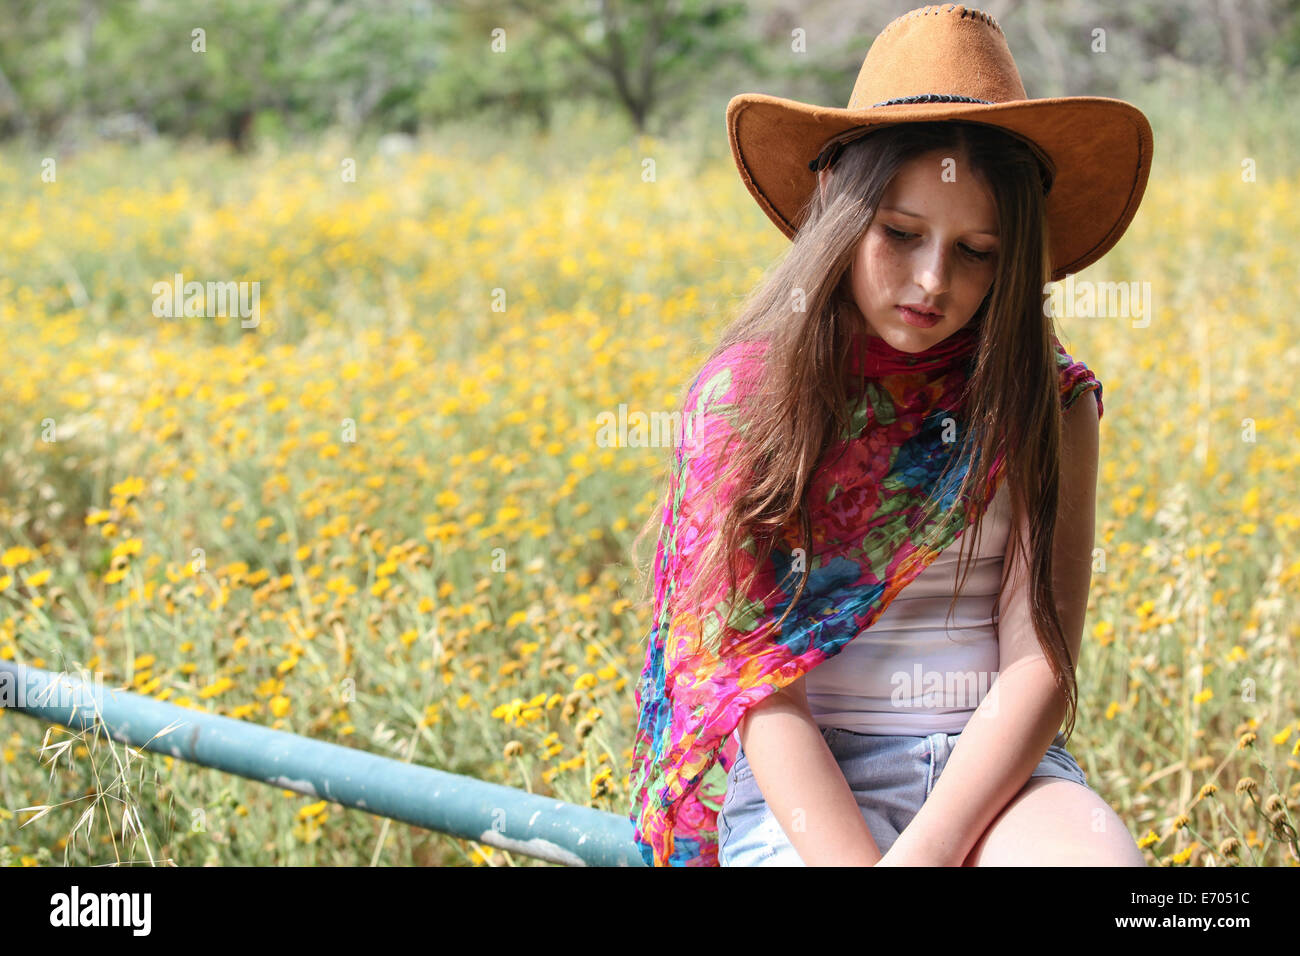 Sullen girl in cowboy hat sitting on fence gazing down - Stock Image